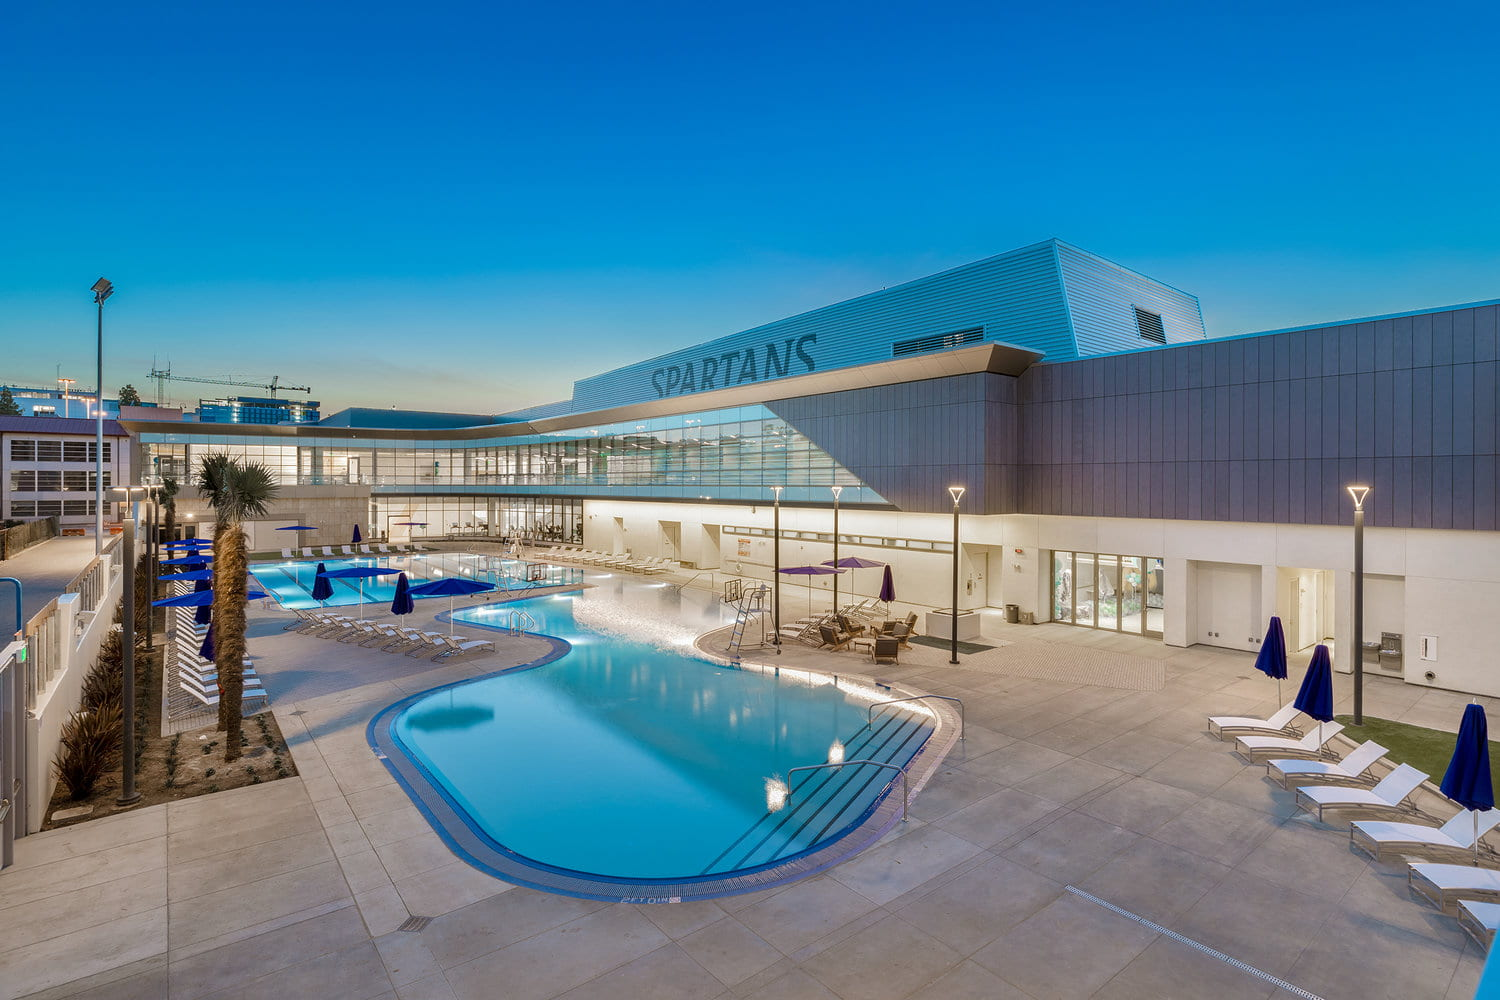 Night shot of the SRAC pool and exterior building.